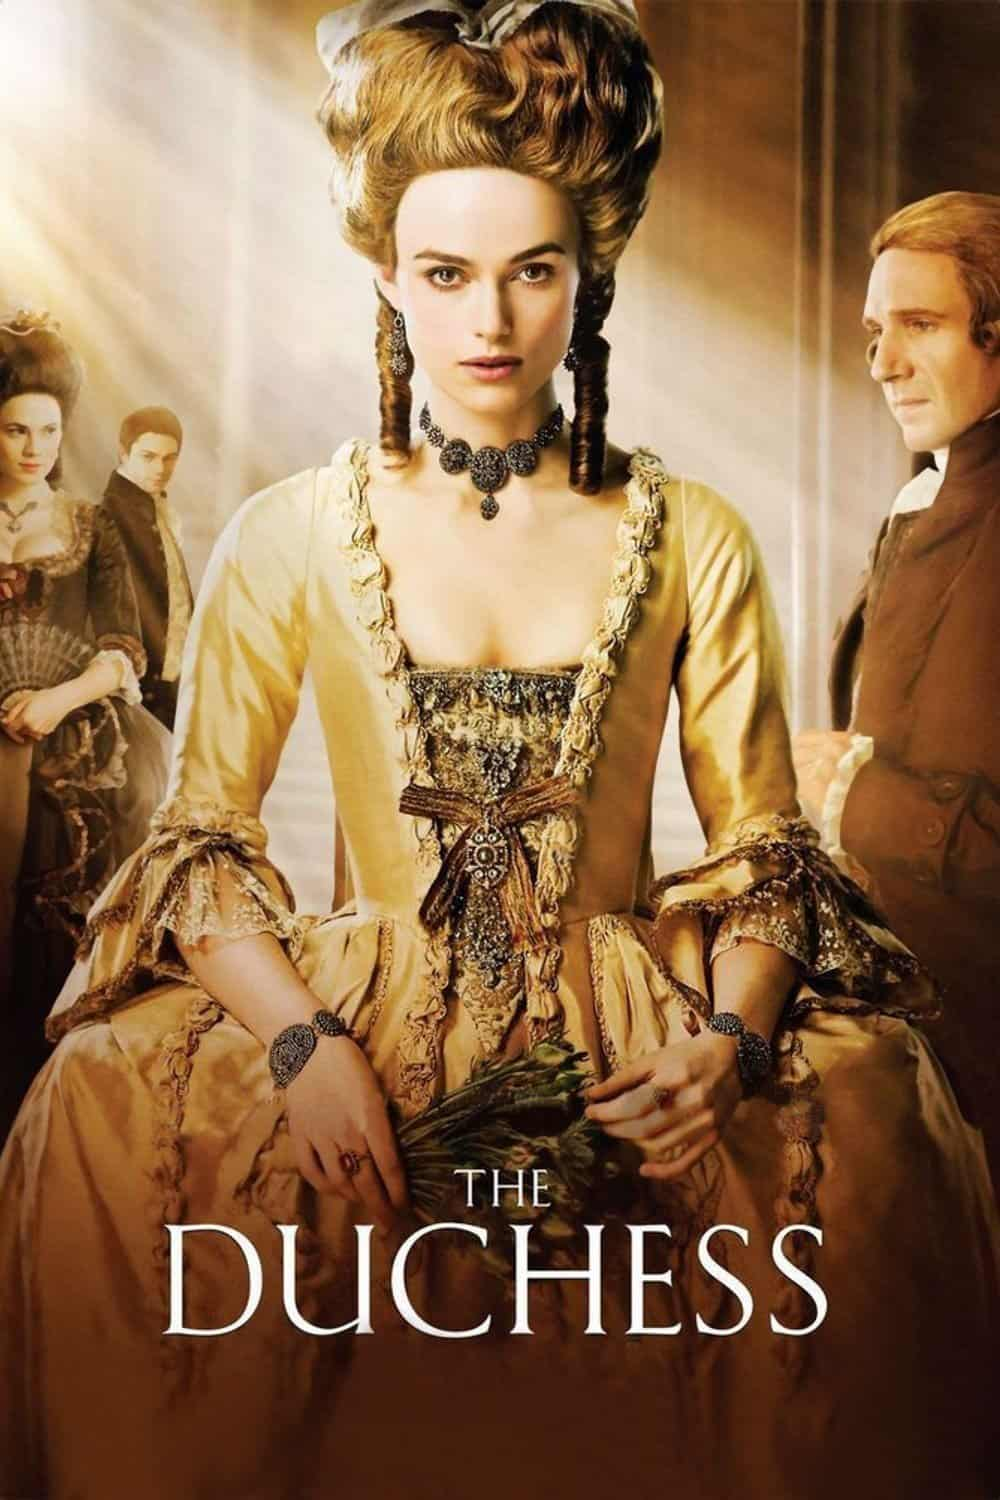 The Duchess, 2008